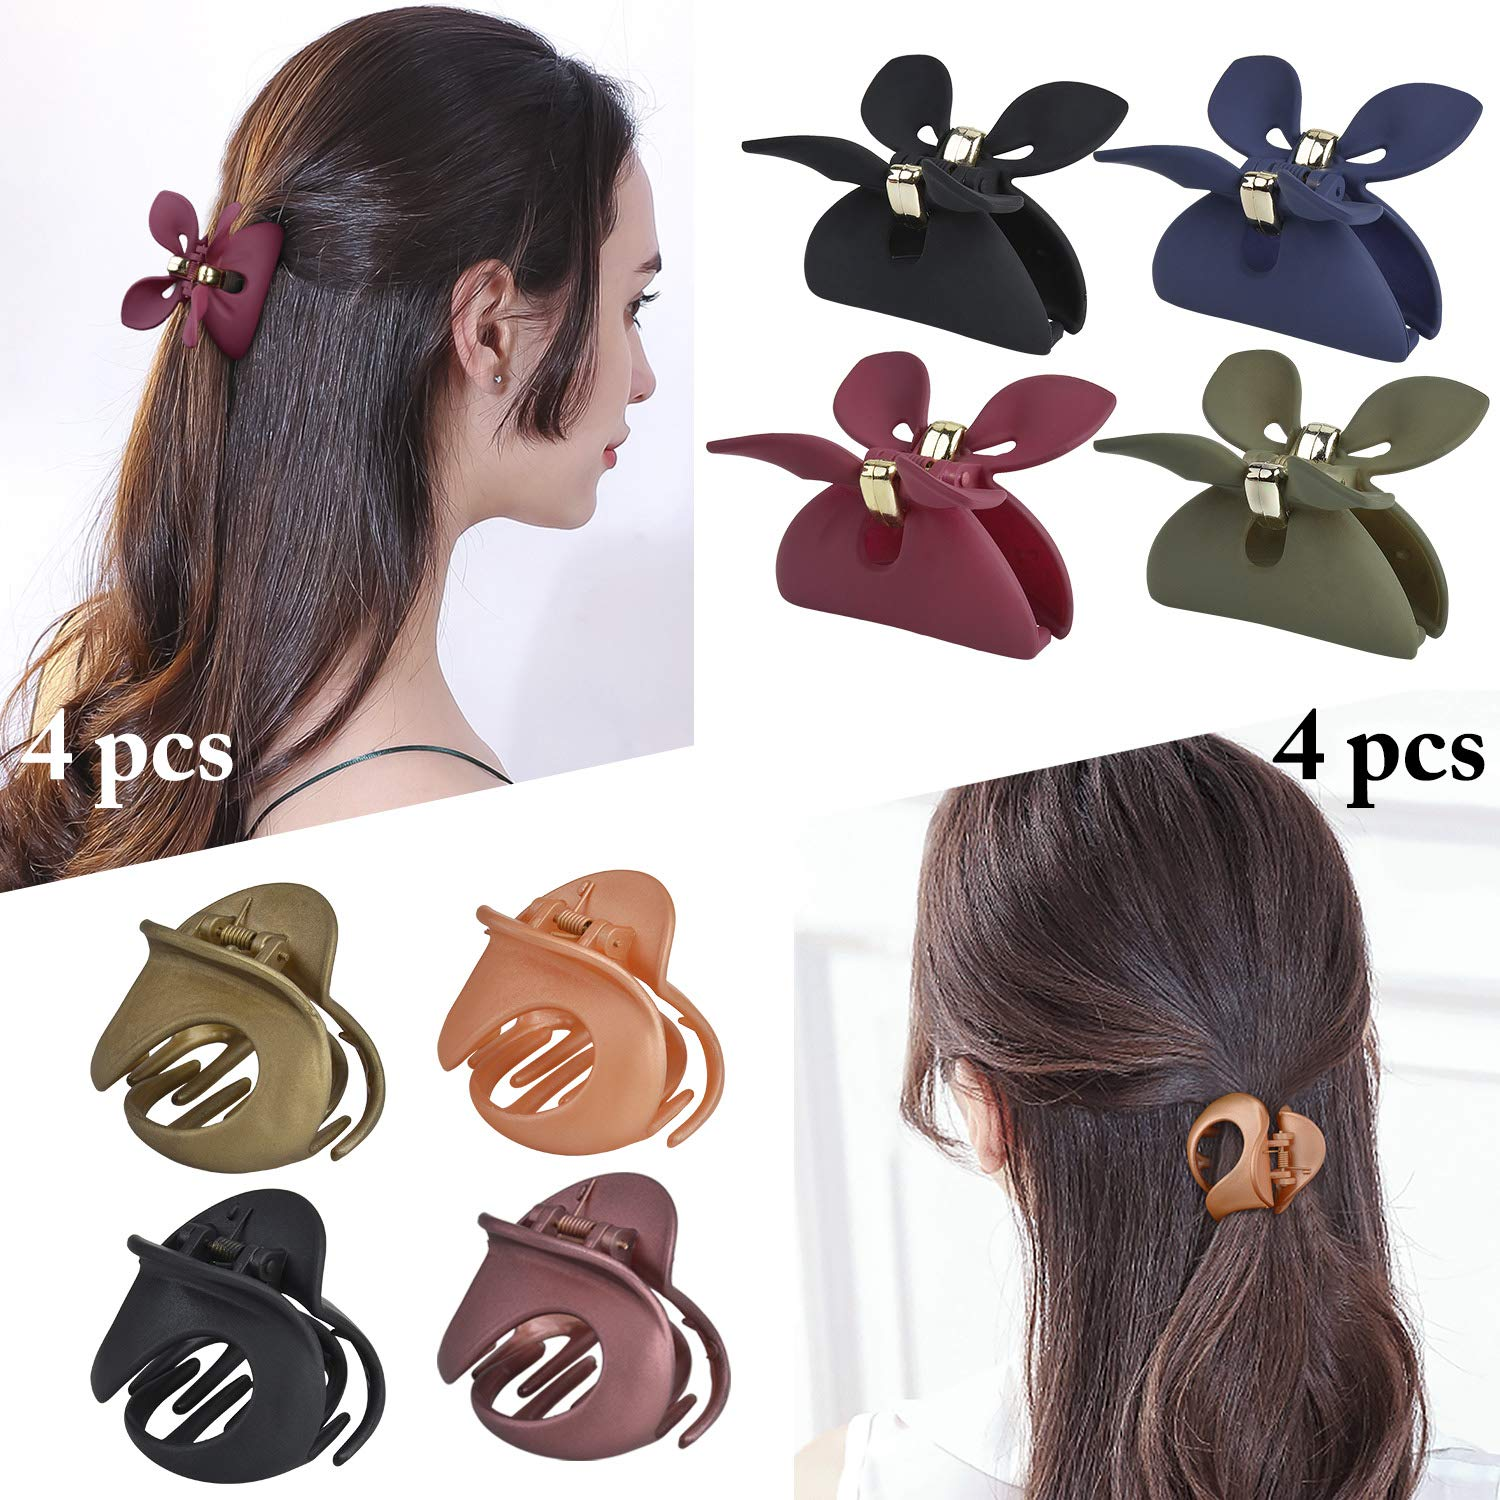 Hair Jaw Clips, Fascigirl 8PCS Medium Jaw Clips for Fine Hair Octopus Side Comb Clips for Women Matte Color Punch Claw Clip